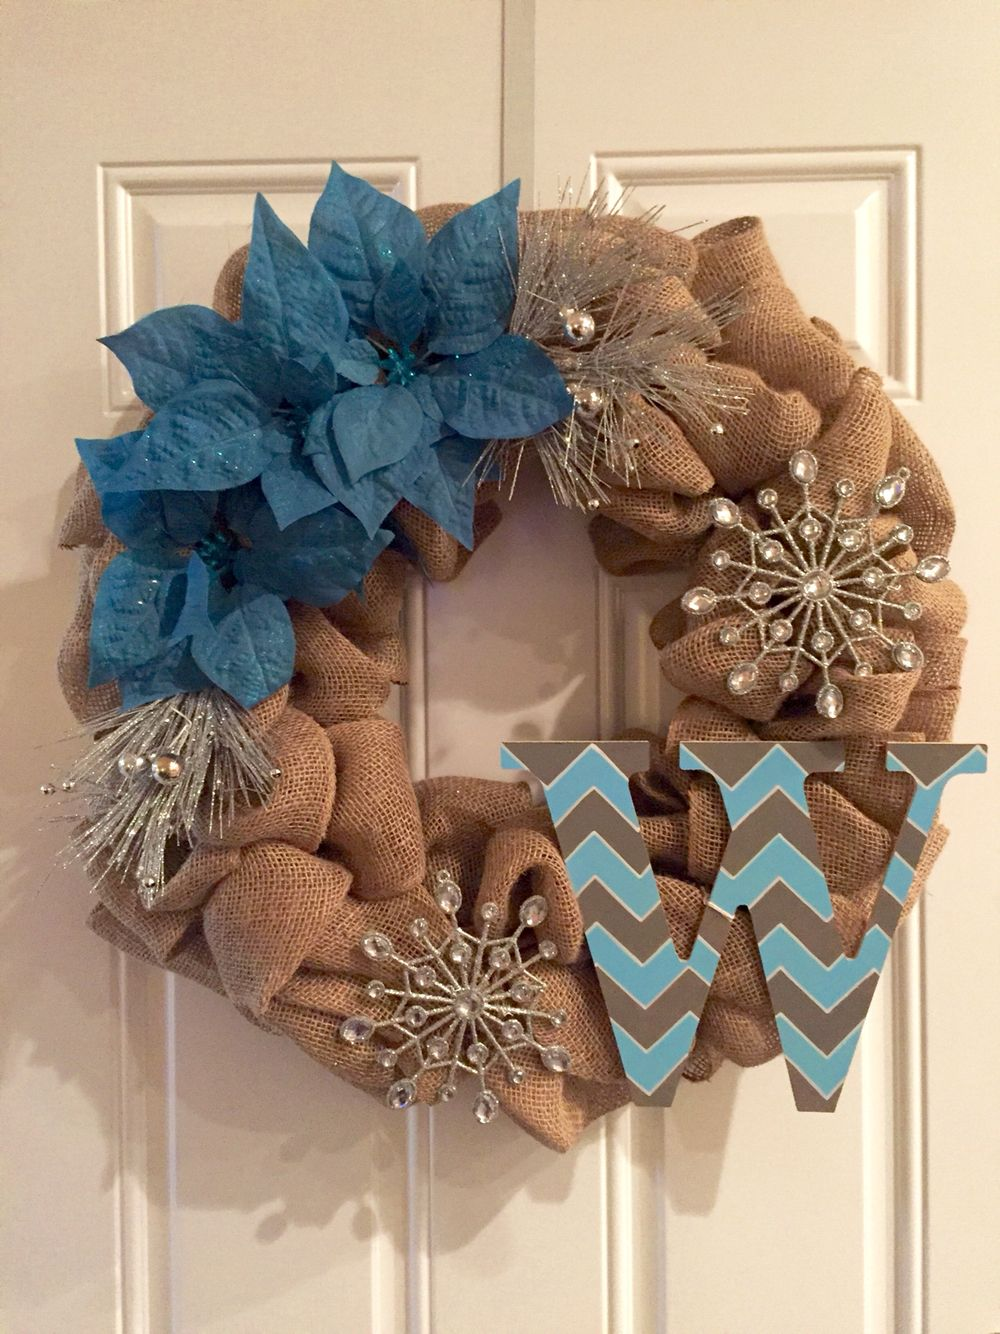 Burlap winter wreath with chevron painted letter the flowers and